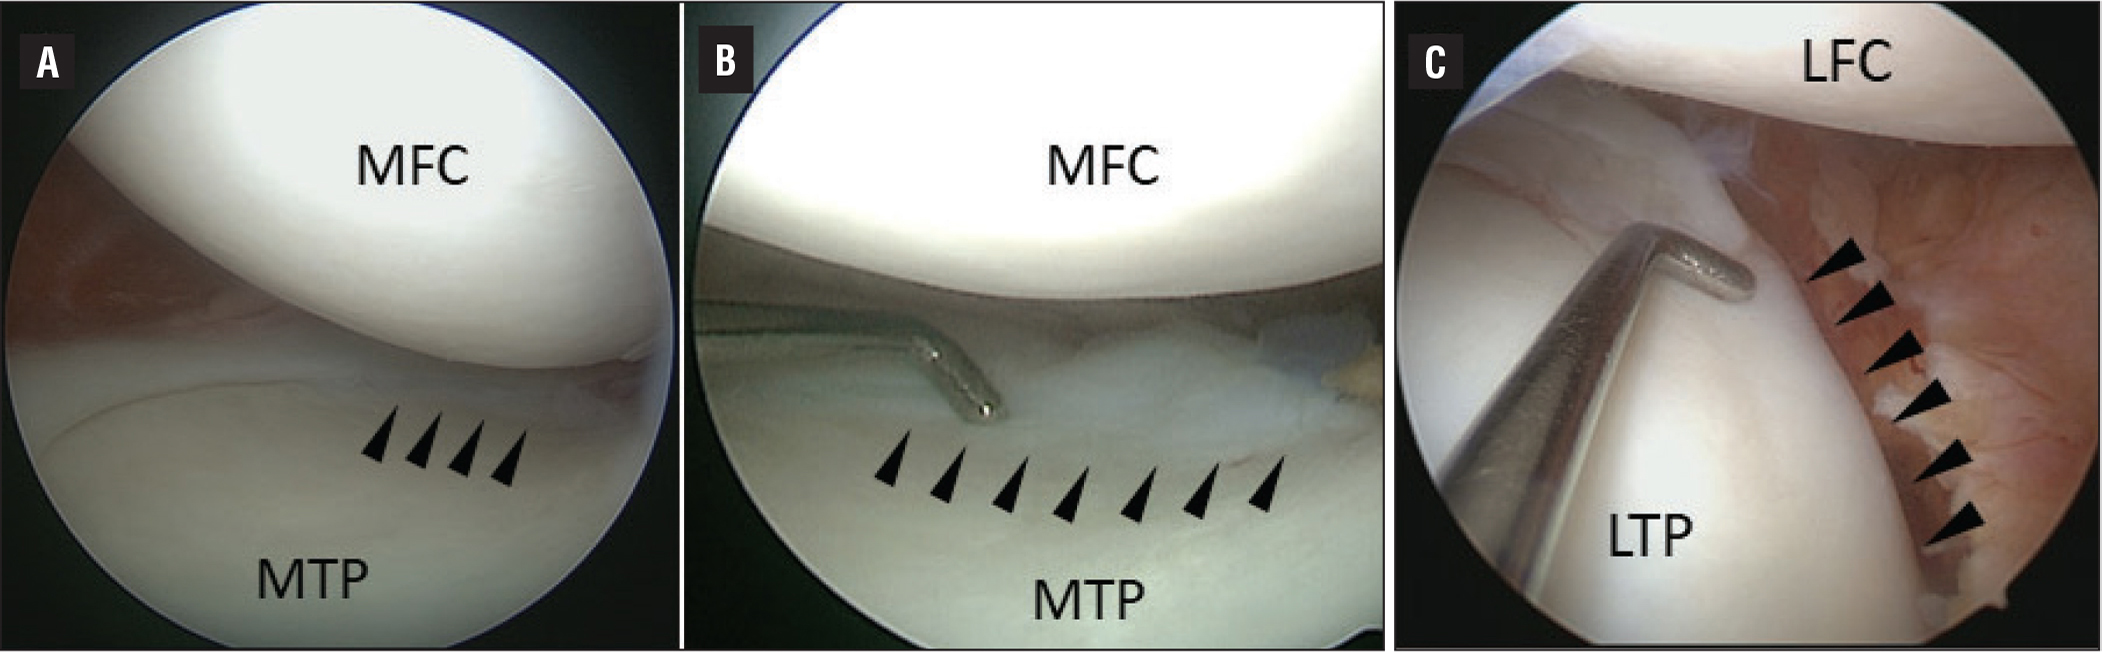 The medial meniscus is totally diminutive without tear (A), and its posterior horn fuses to the cartilage surface of the tibia (arrowheads) (A–B). Anterior horn and middle body of the lateral meniscus are absent (C). The degenerative horizontal tear is seen at the posterior horn of the lateral meniscus, and its body terminates and fuses to the cartilage surface of the tibia in front of the popliteal hiatus (arrowheads) (C). Abbreviations: LFC, lateral femoral condyle; LTP, lateral tibial plateau; MFC, medial femoral condyle; MTP, medial tibial plateau.